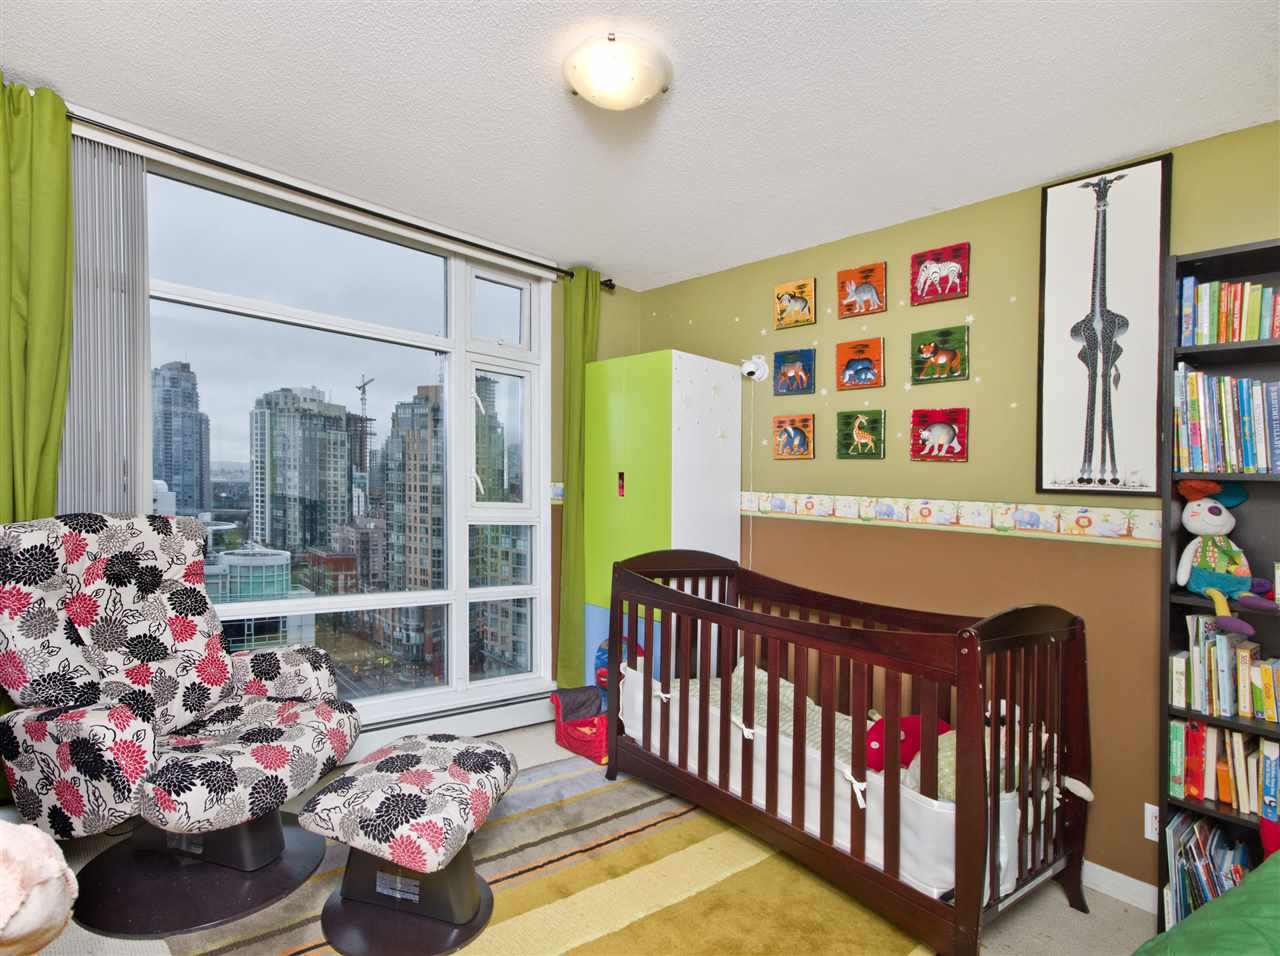 "Photo 8: 2108 198 AQUARIUS Mews in Vancouver: Yaletown Condo for sale in ""THE AQUARIUS"" (Vancouver West)  : MLS® # R2125703"